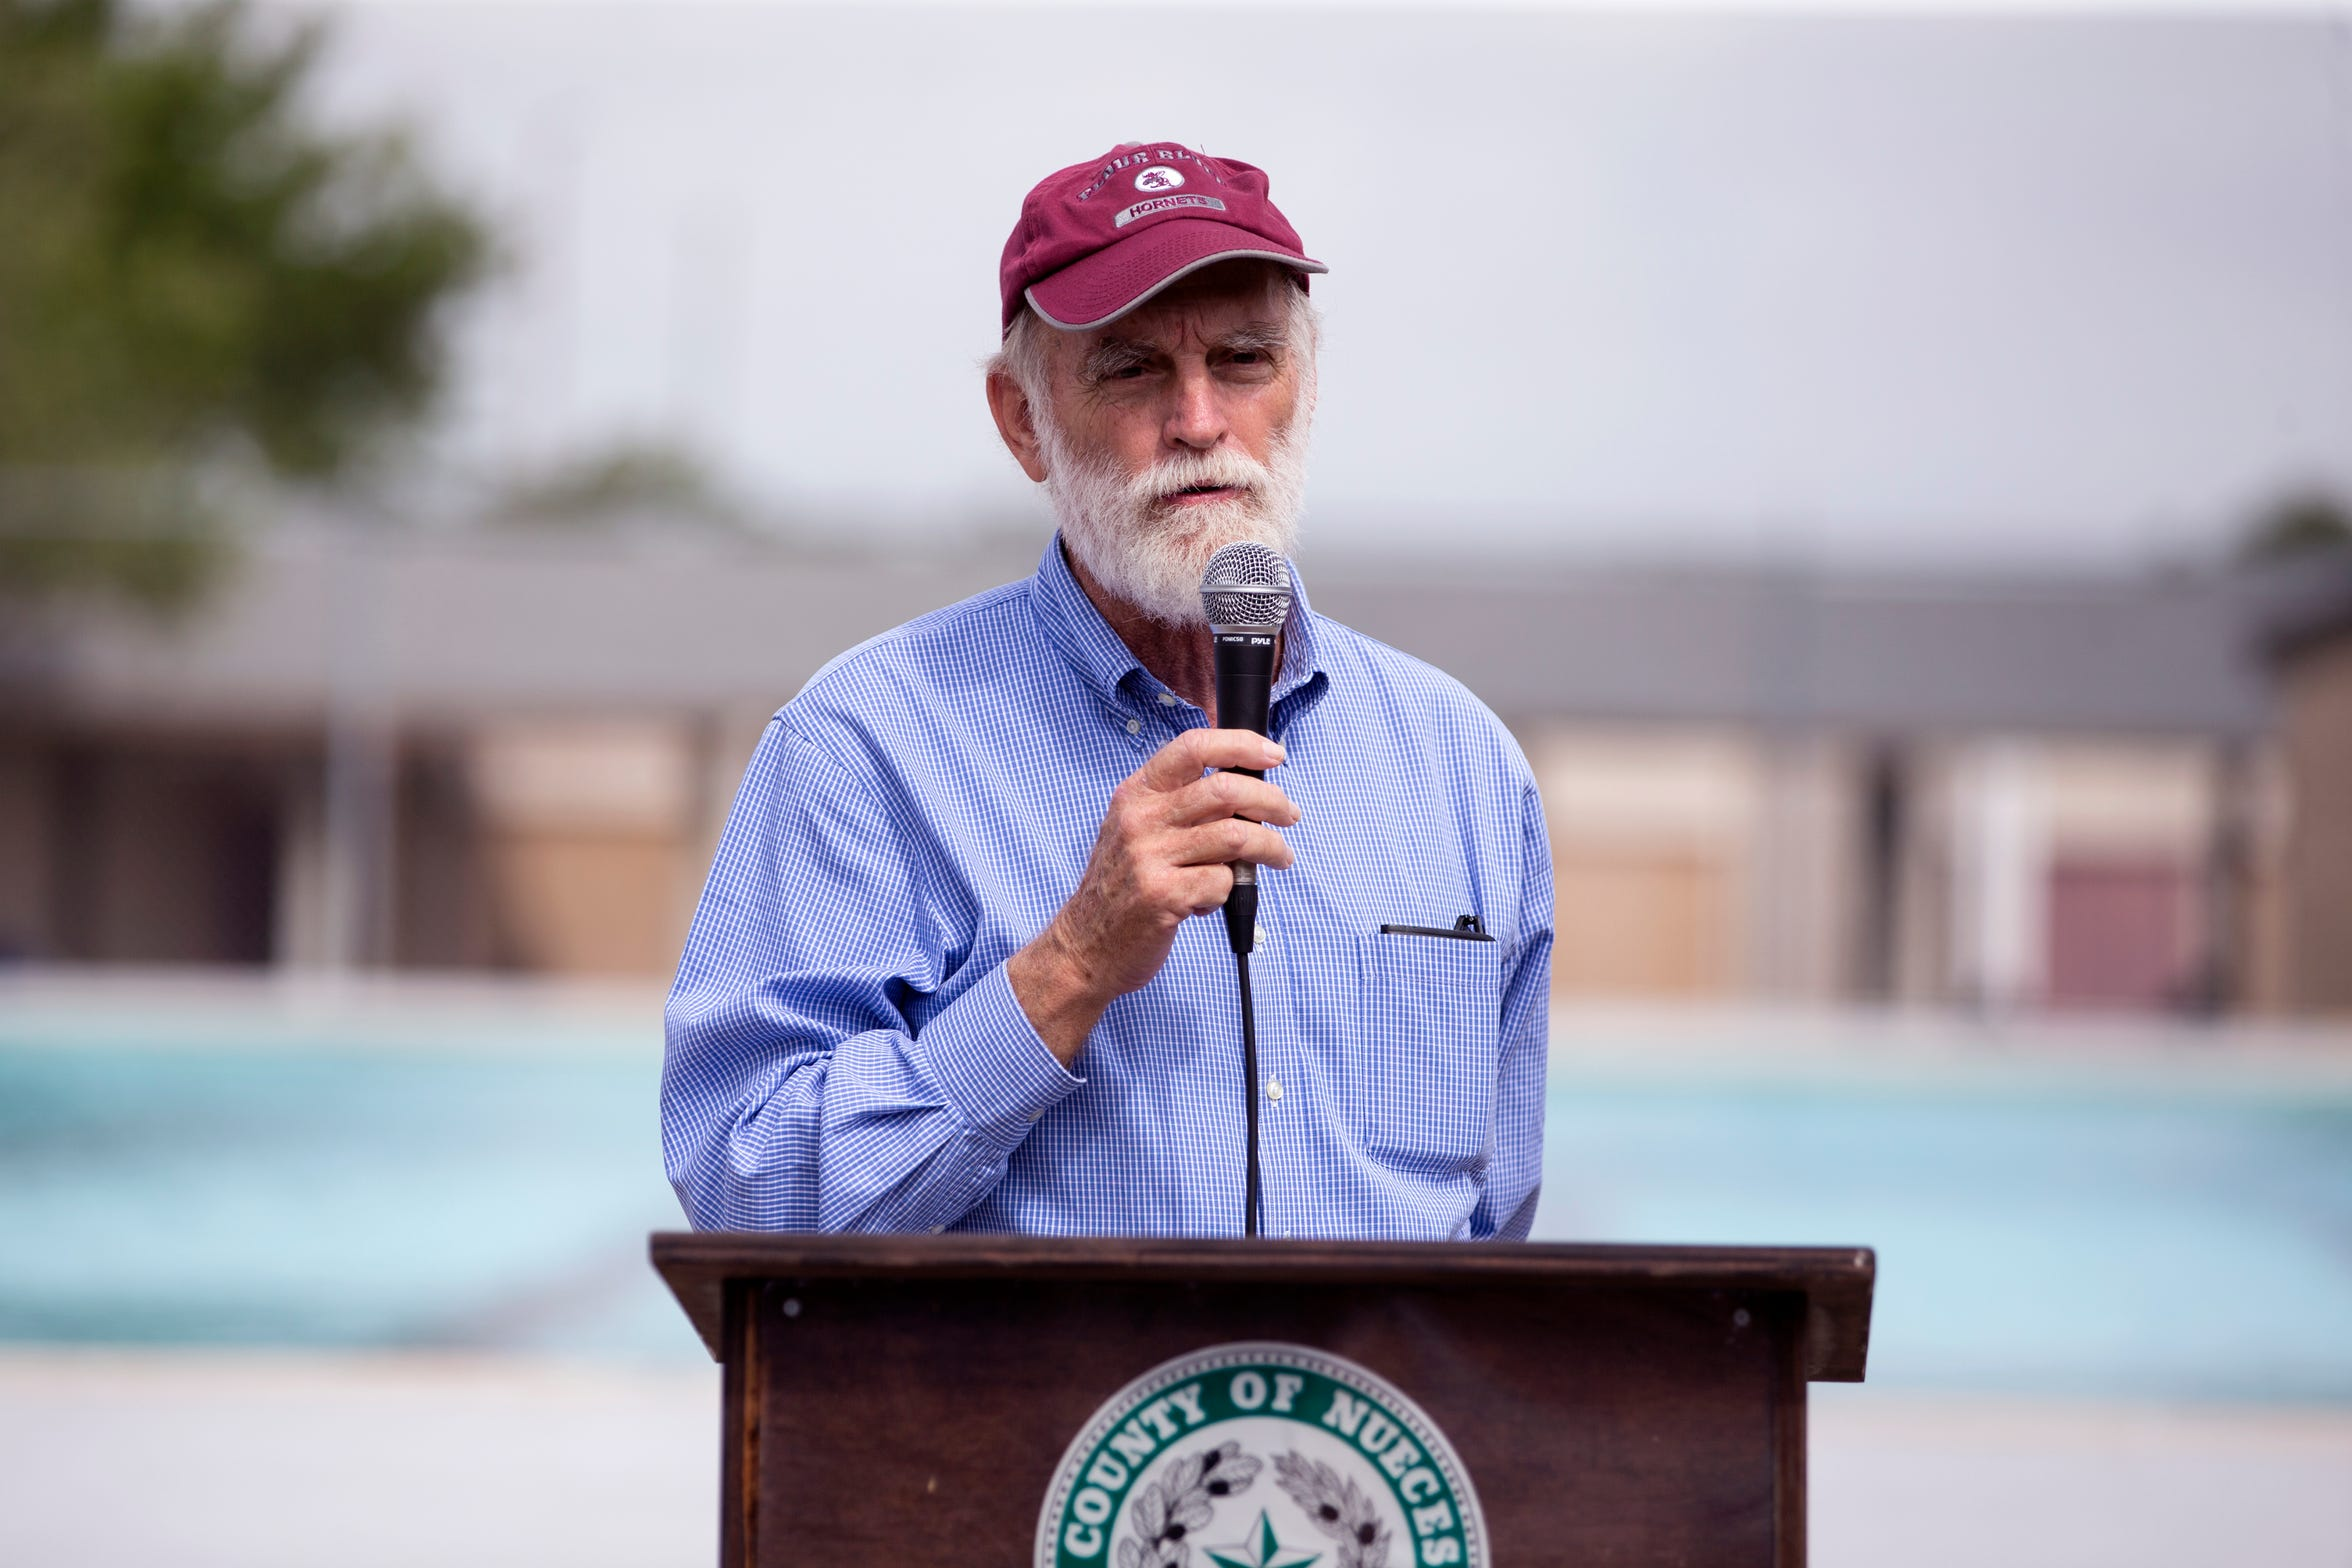 City Council Member Greg Smith speaks about the history of Parker Pool during the Re-Grand Opening of the pool in Flour Bluff on Friday, May 24, 2019. The Nueces County Inland Parks Department and the Coastal Bend Friends of Aquatics made extensive renovations and enhancements to the pool.